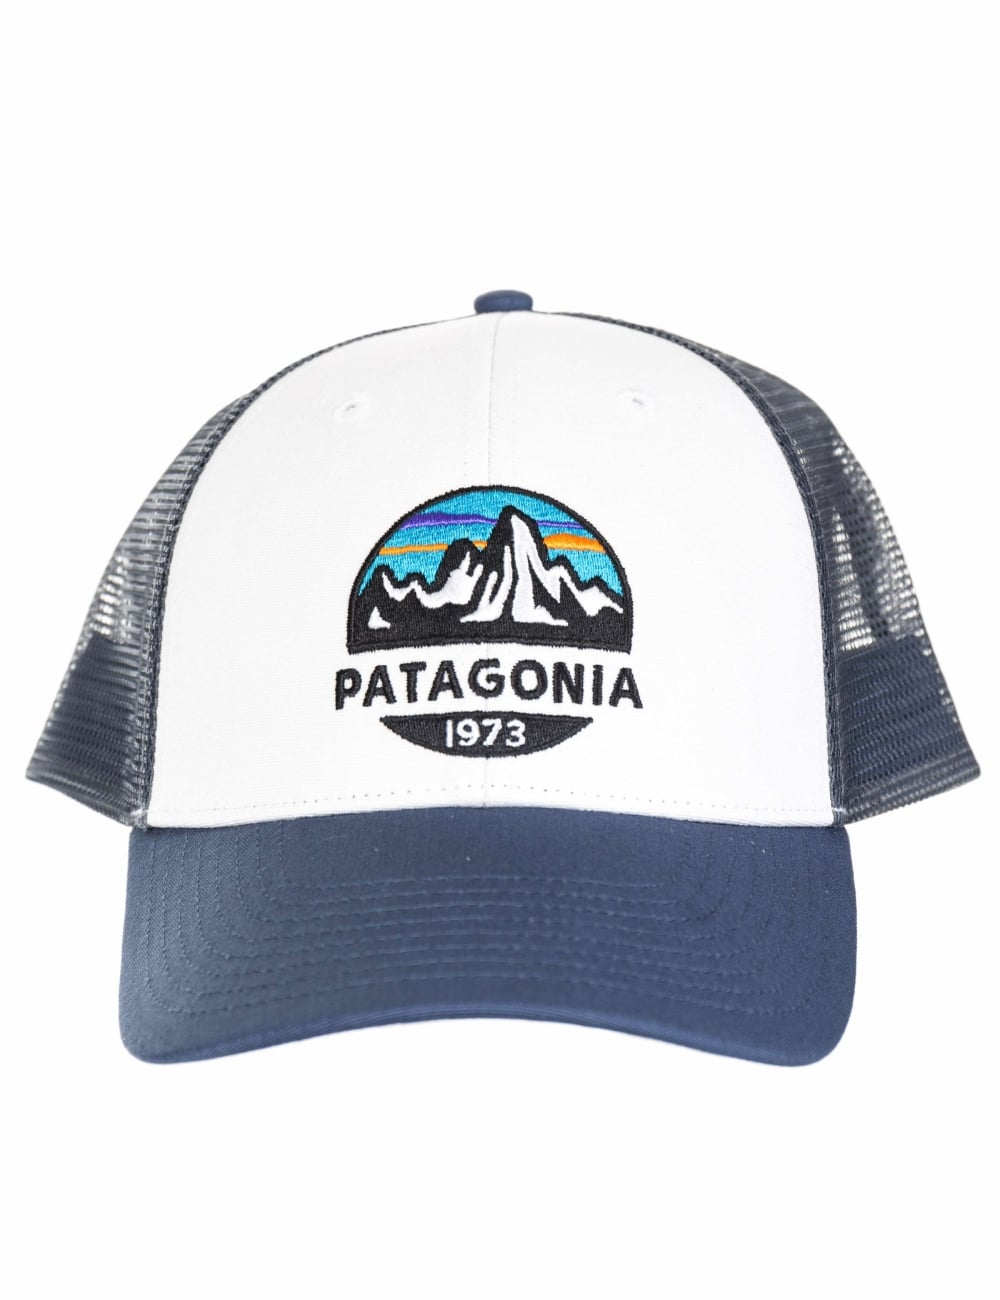 2046fdf9e77 Patagonia Fitz Roy Scope LoPro Trucker Hat - White - Accessories ...